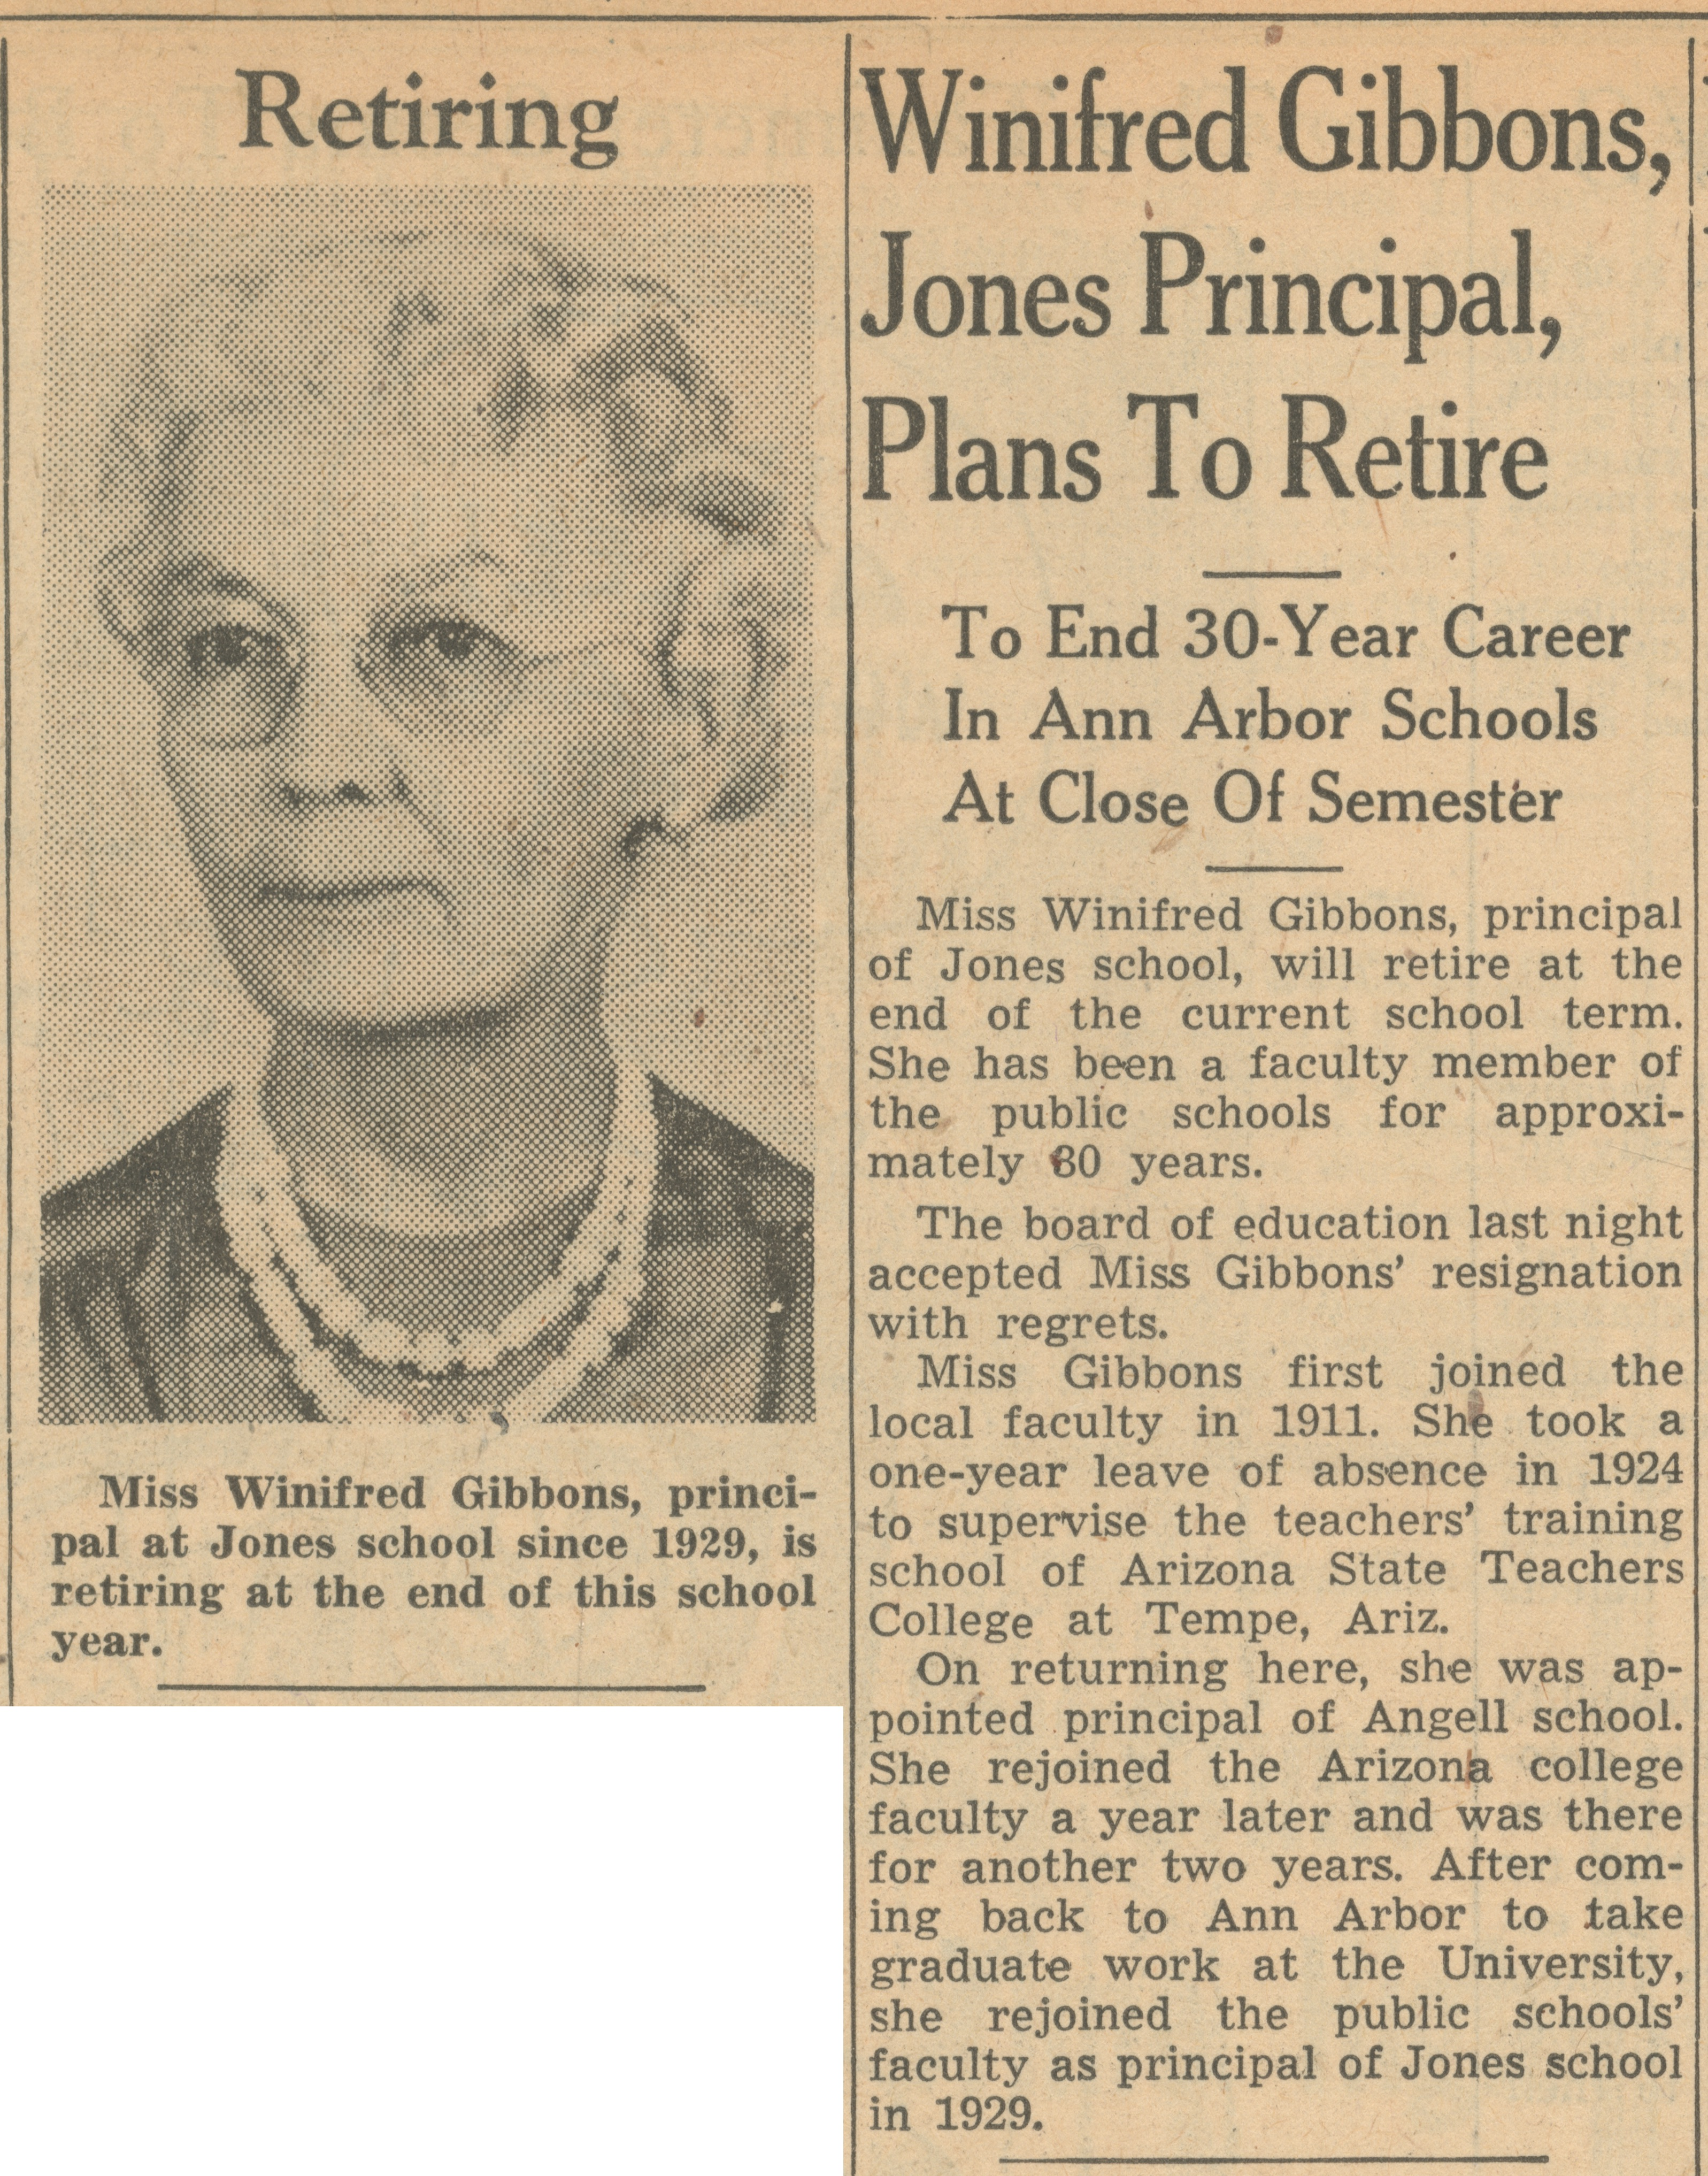 Winifred Gibbons, Jones Principal, Plans To Retire image